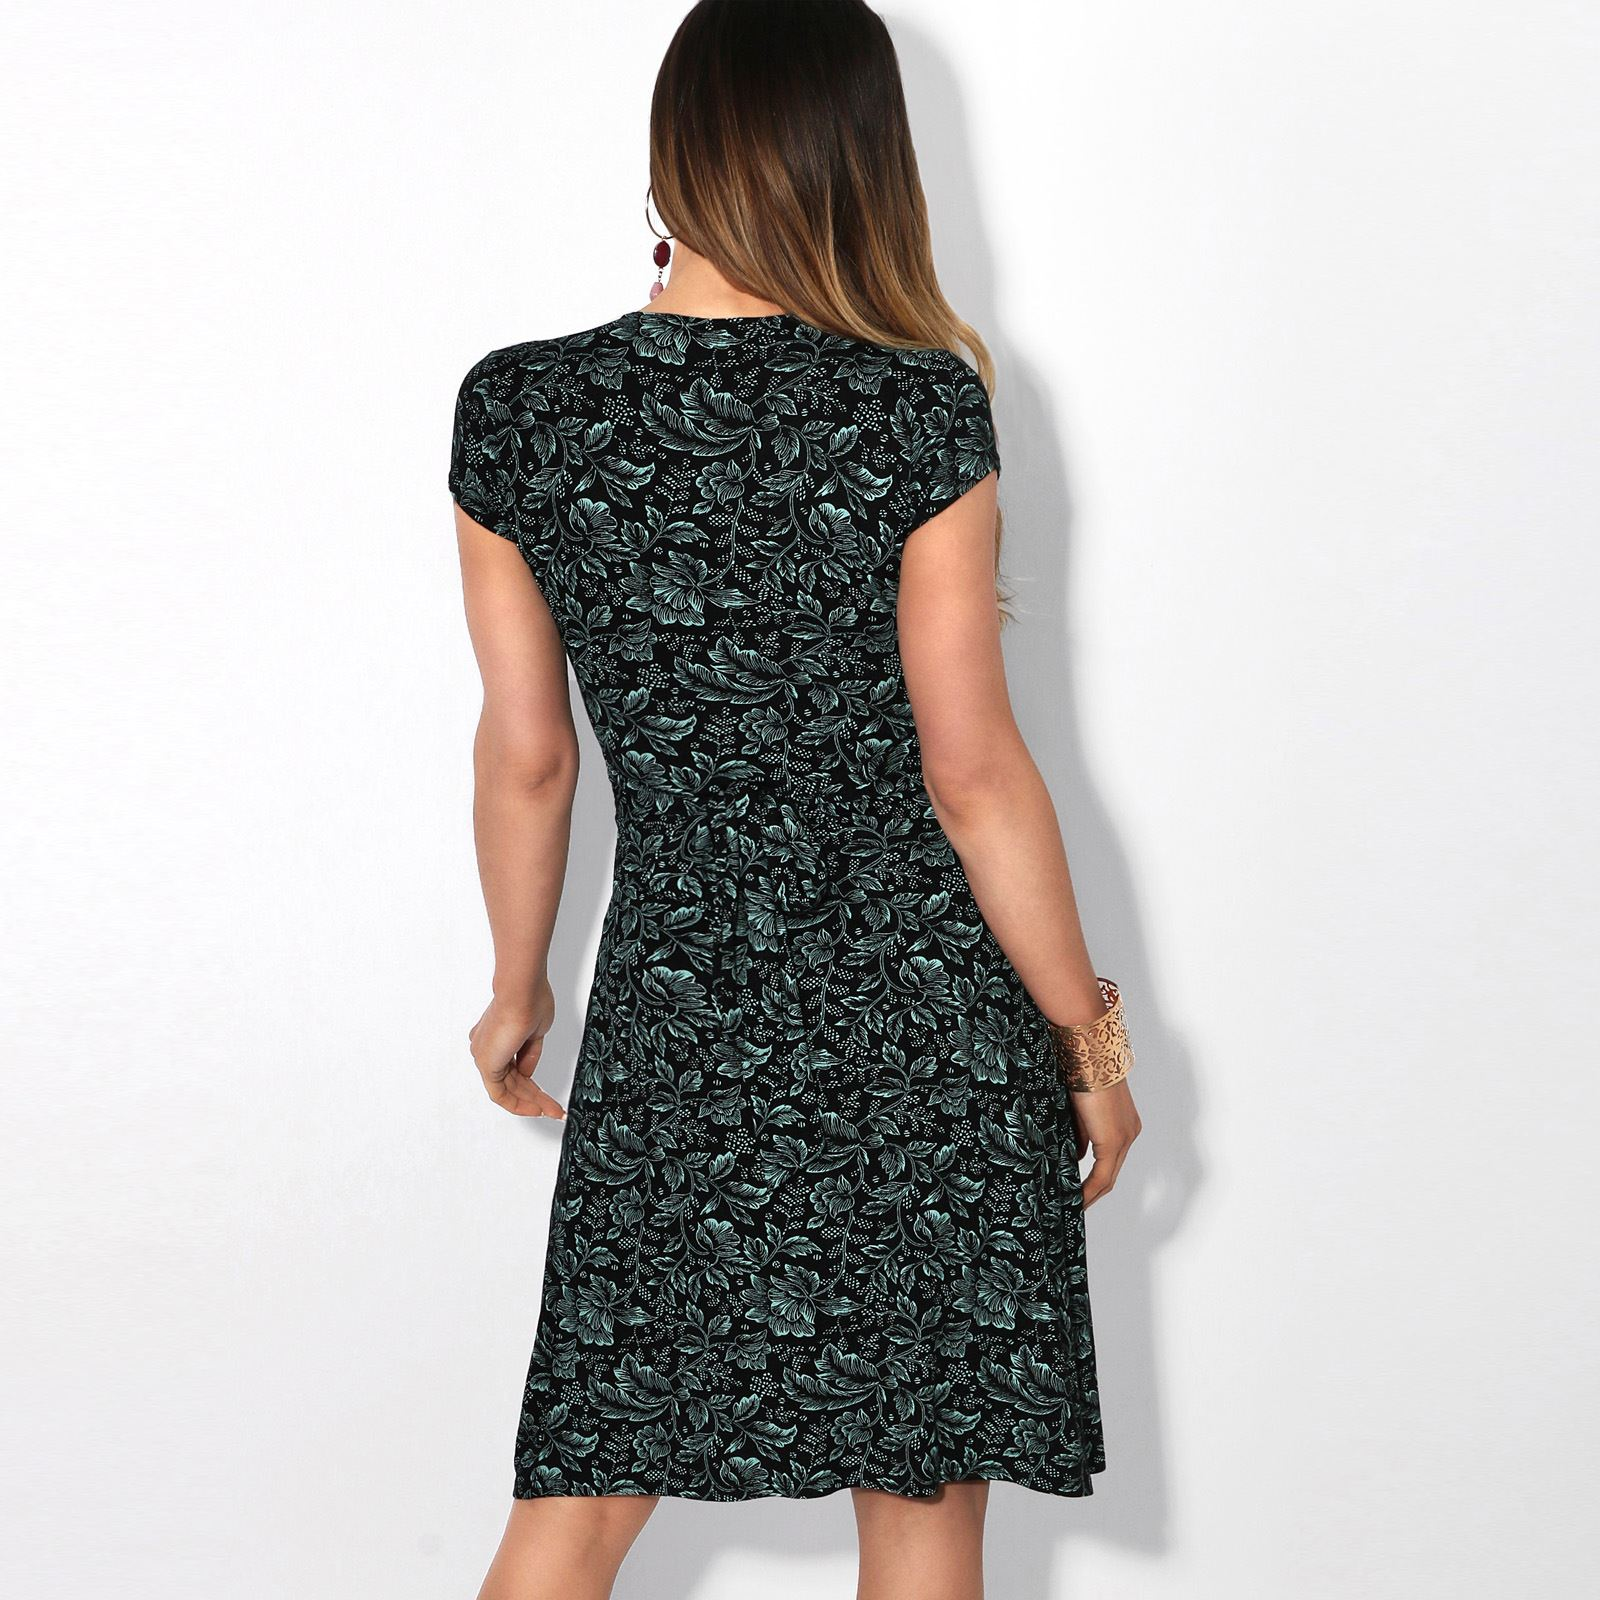 Womens-Ladies-V-Neck-Mini-Midi-Dress-Floral-Print-Knot-Short-Skirt-Party-Casual thumbnail 24